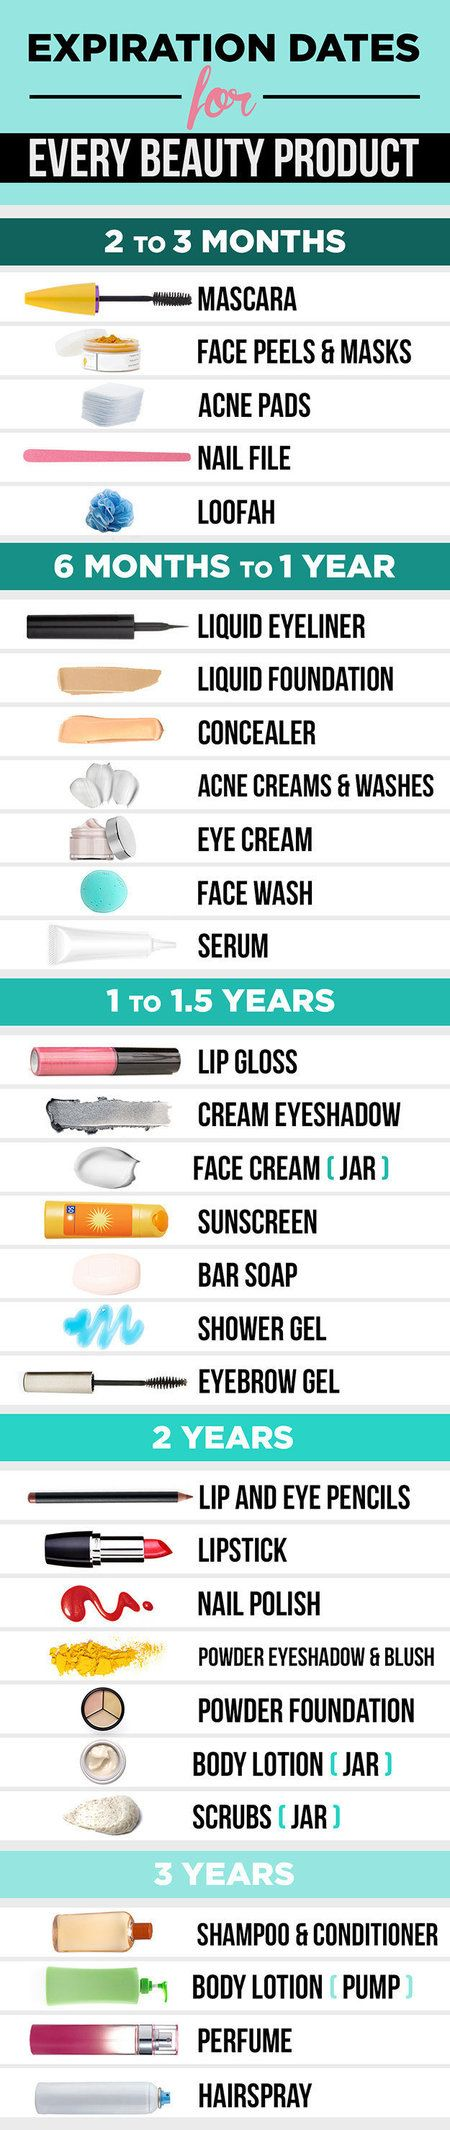 It's hard to remember how long you should keep makeup around! I am guilty of this and need to clean out my makeup! The worst part is throwing away makeup that still looks good;) http://www.buzzfeed.com/augustafalletta/its-time-to-start-throwing-out-the-makeup-youve-had-for-year?utm_term=4ldqpia#...